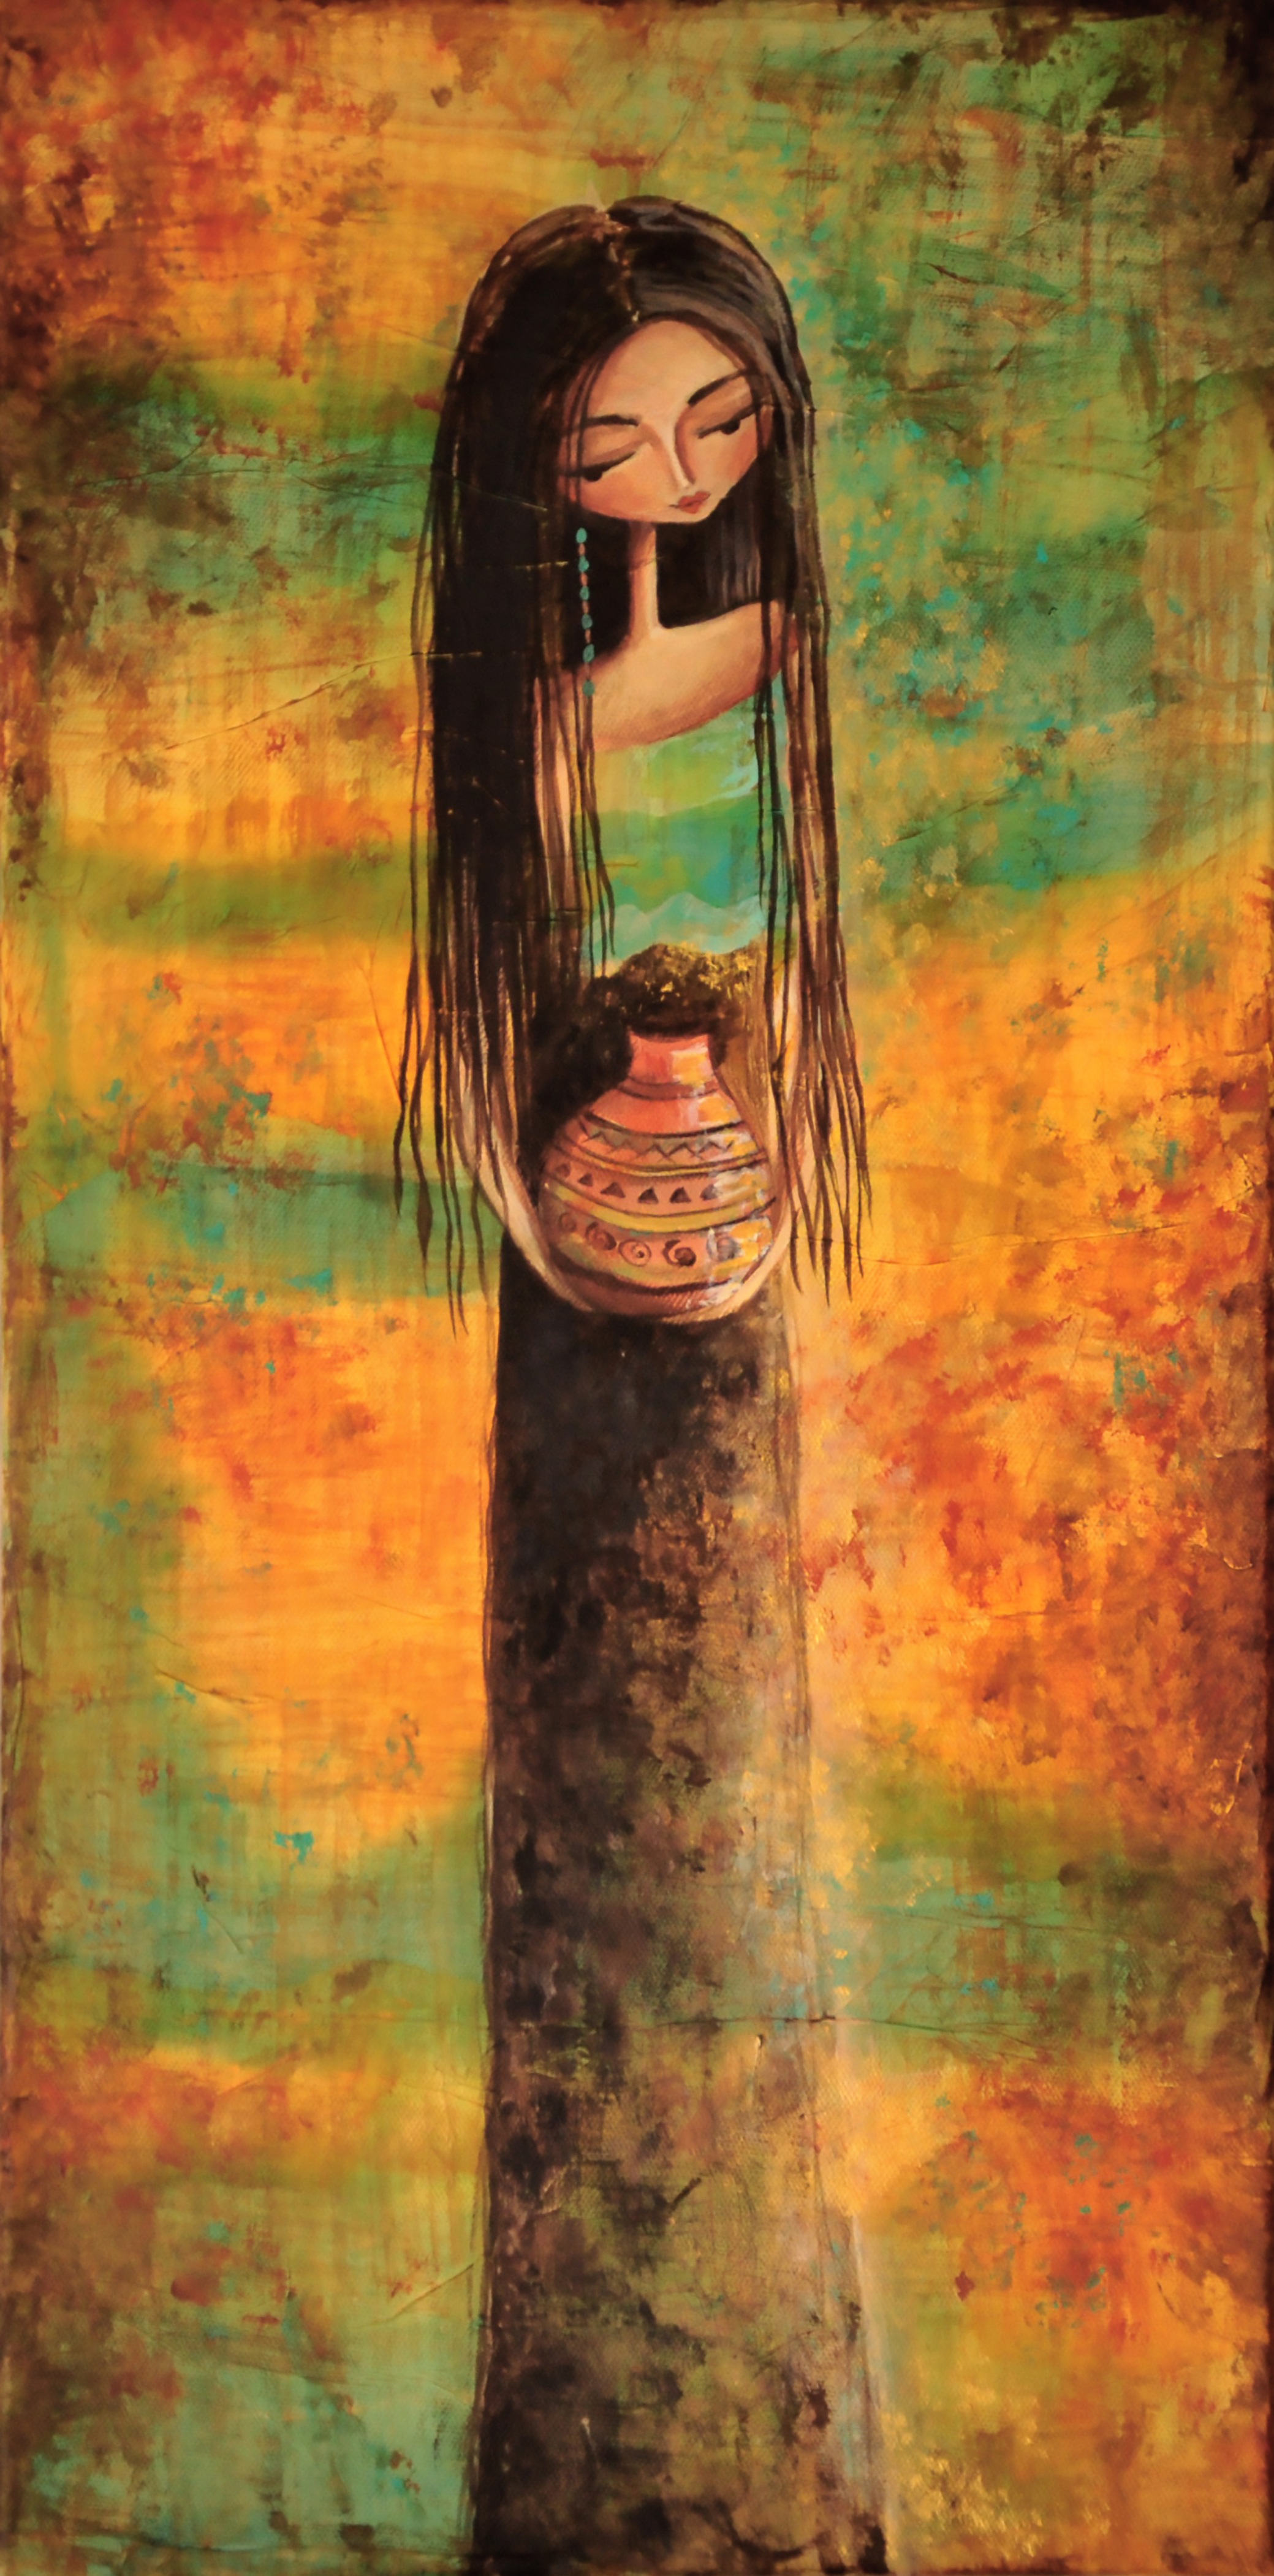 """The Girl in the Taos Desert""    12"" x 24"" Original Tissue & Acrylic on Canvas      $450.00  ""SOLD"""